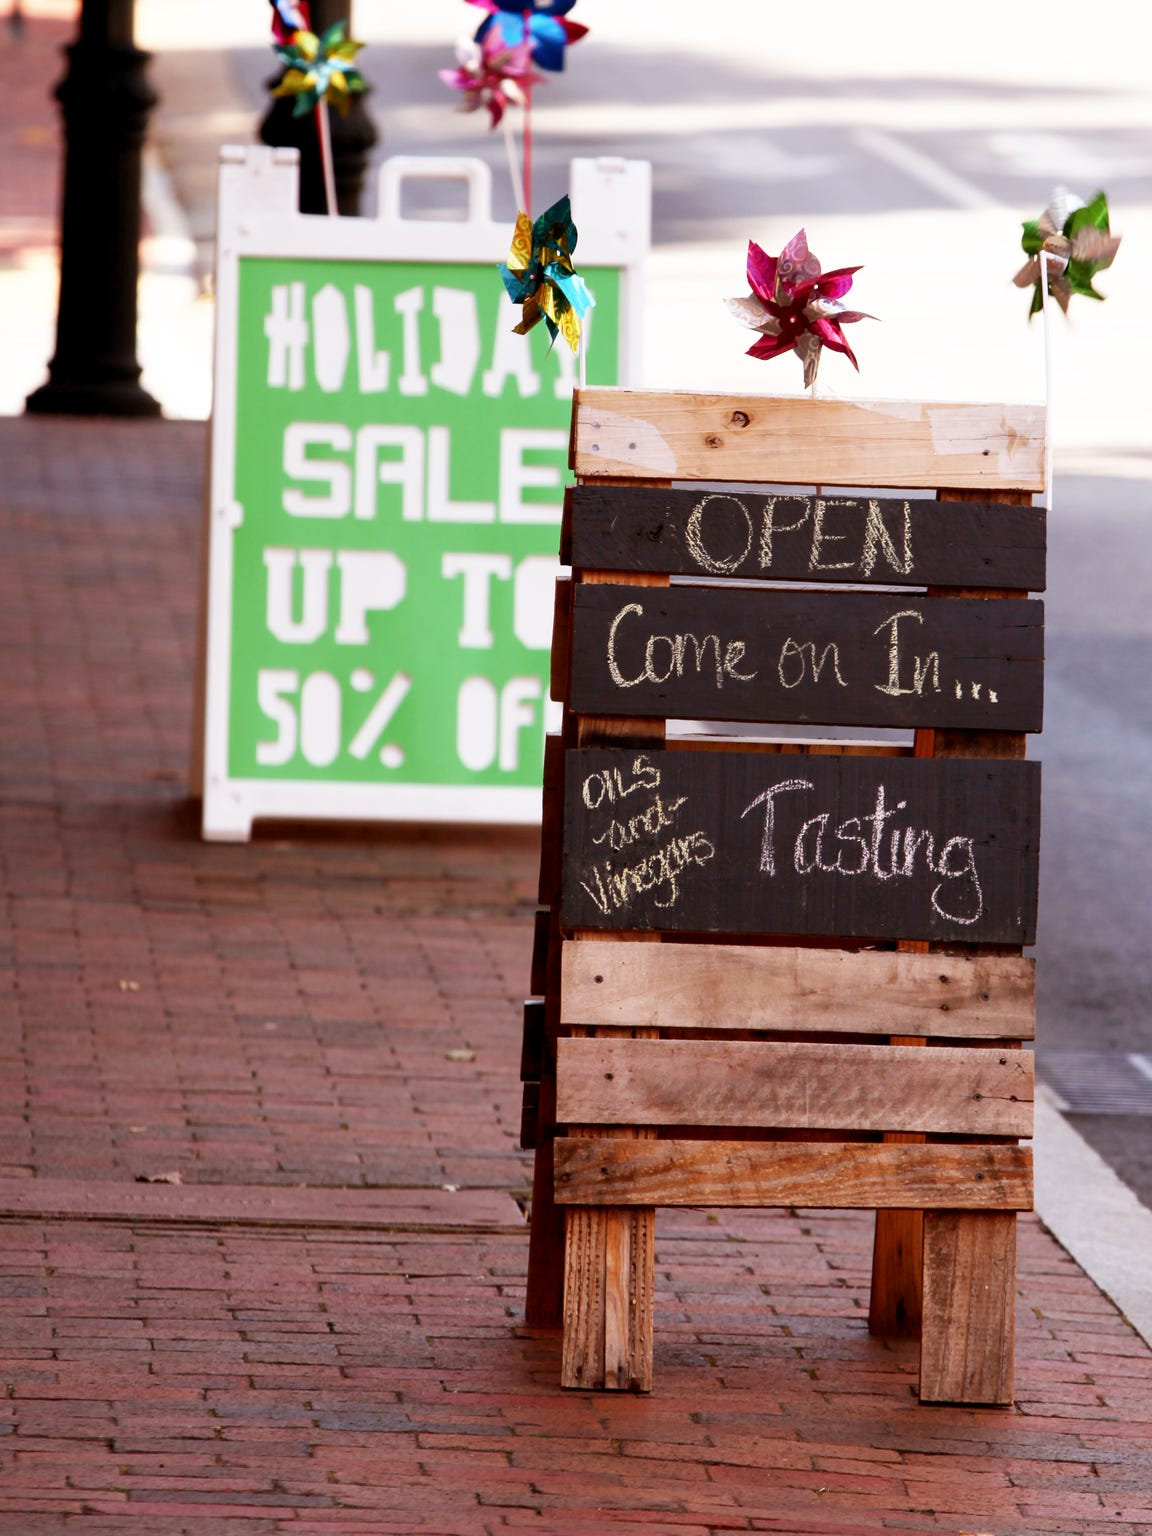 Downtown businesses advertise to shoppers in Staunton